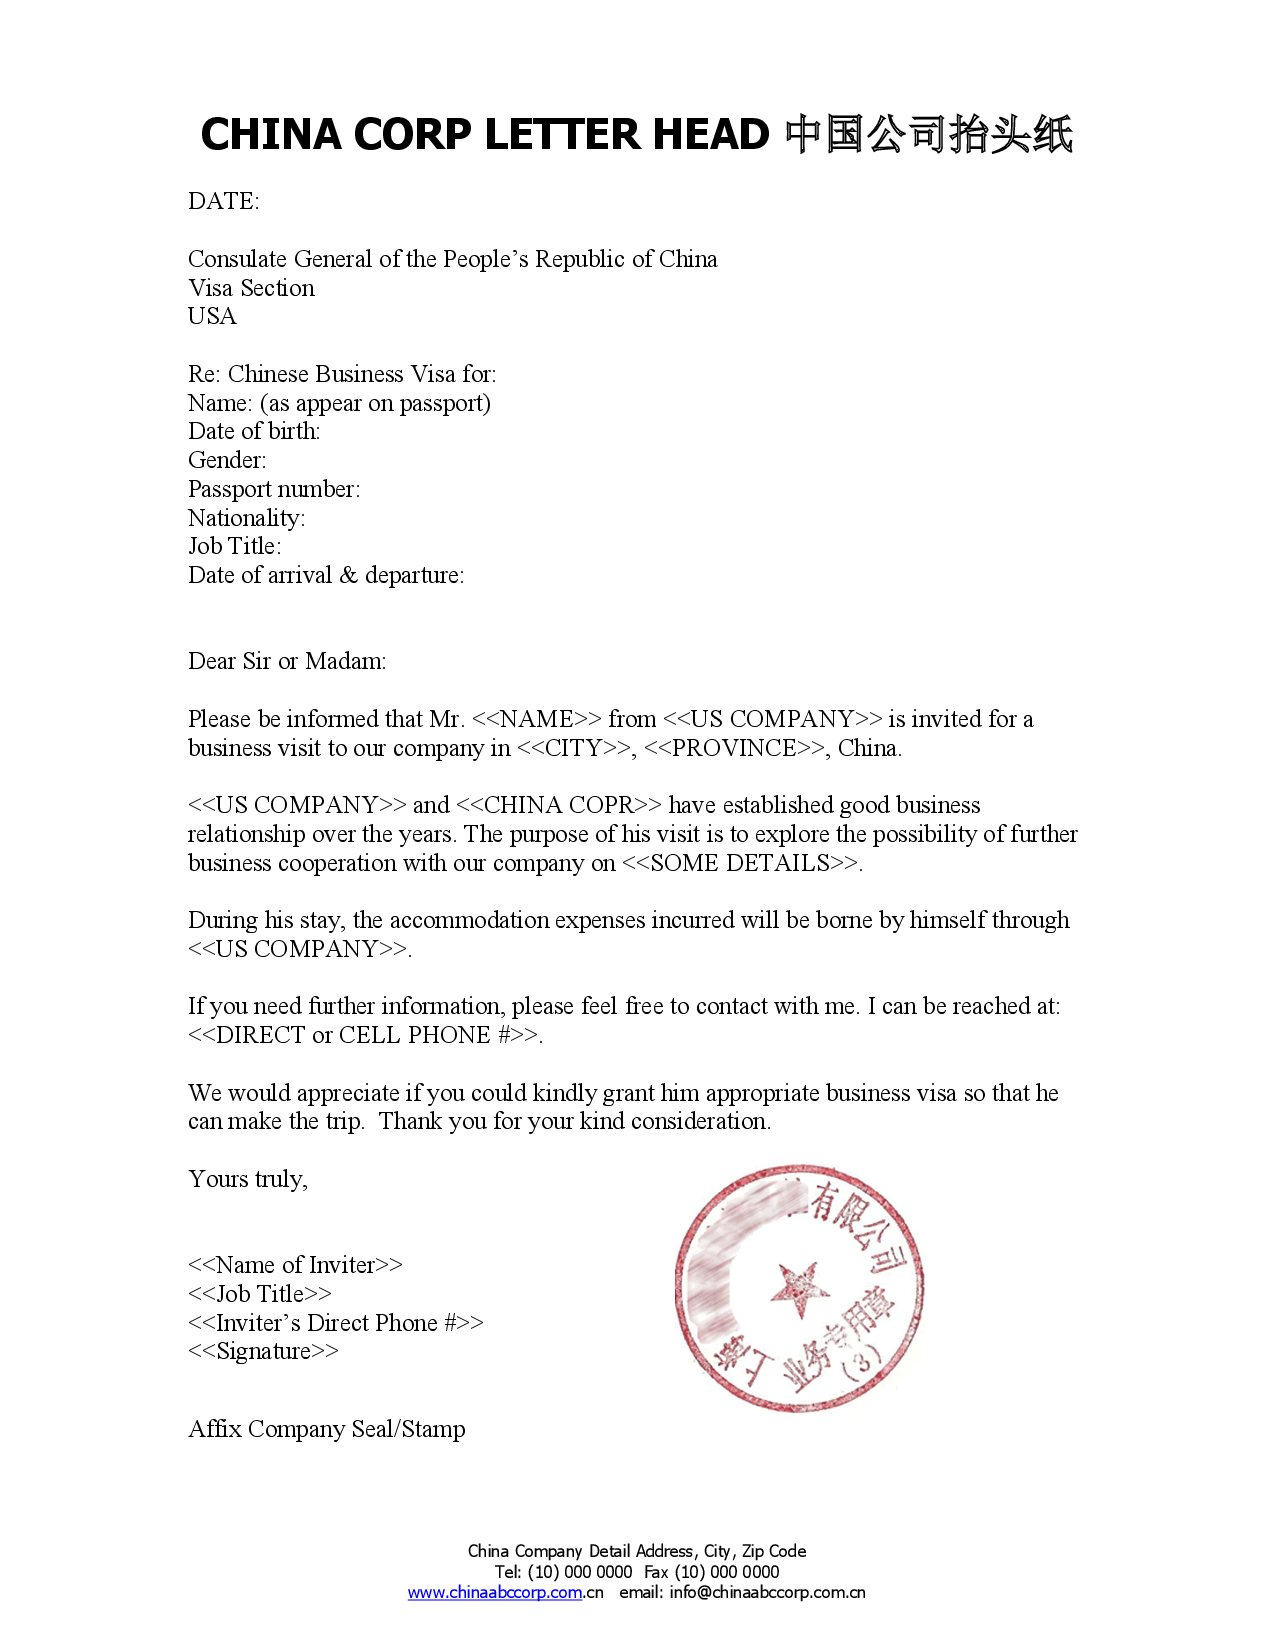 Format invitation letter for business visa to china lettervisa format invitation letter for business visa to china lettervisa invitation letter application letter sample spiritdancerdesigns Image collections